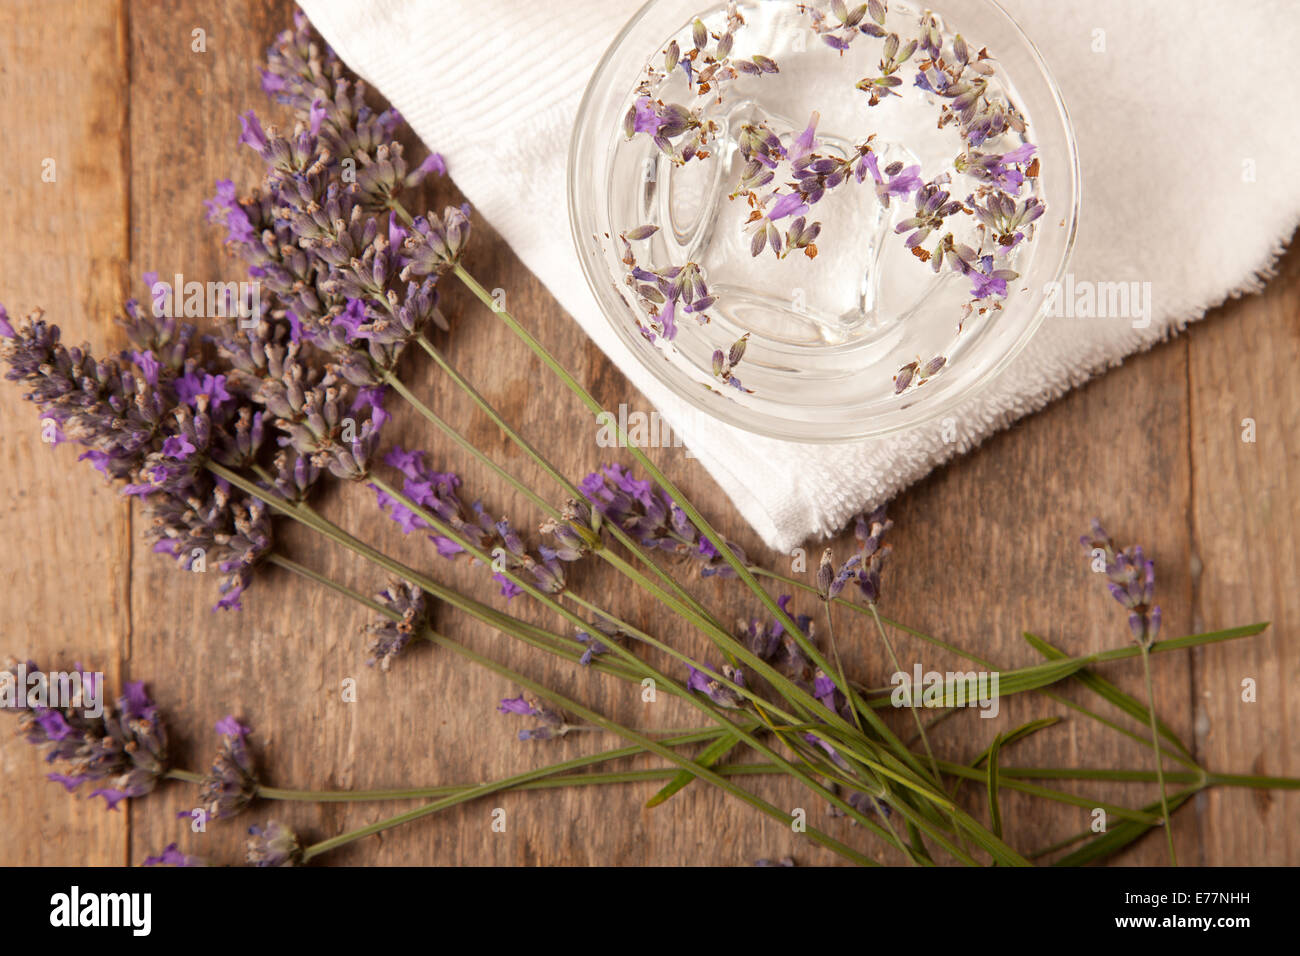 lavenders in the bowl of water on wooden for spa - Stock Image